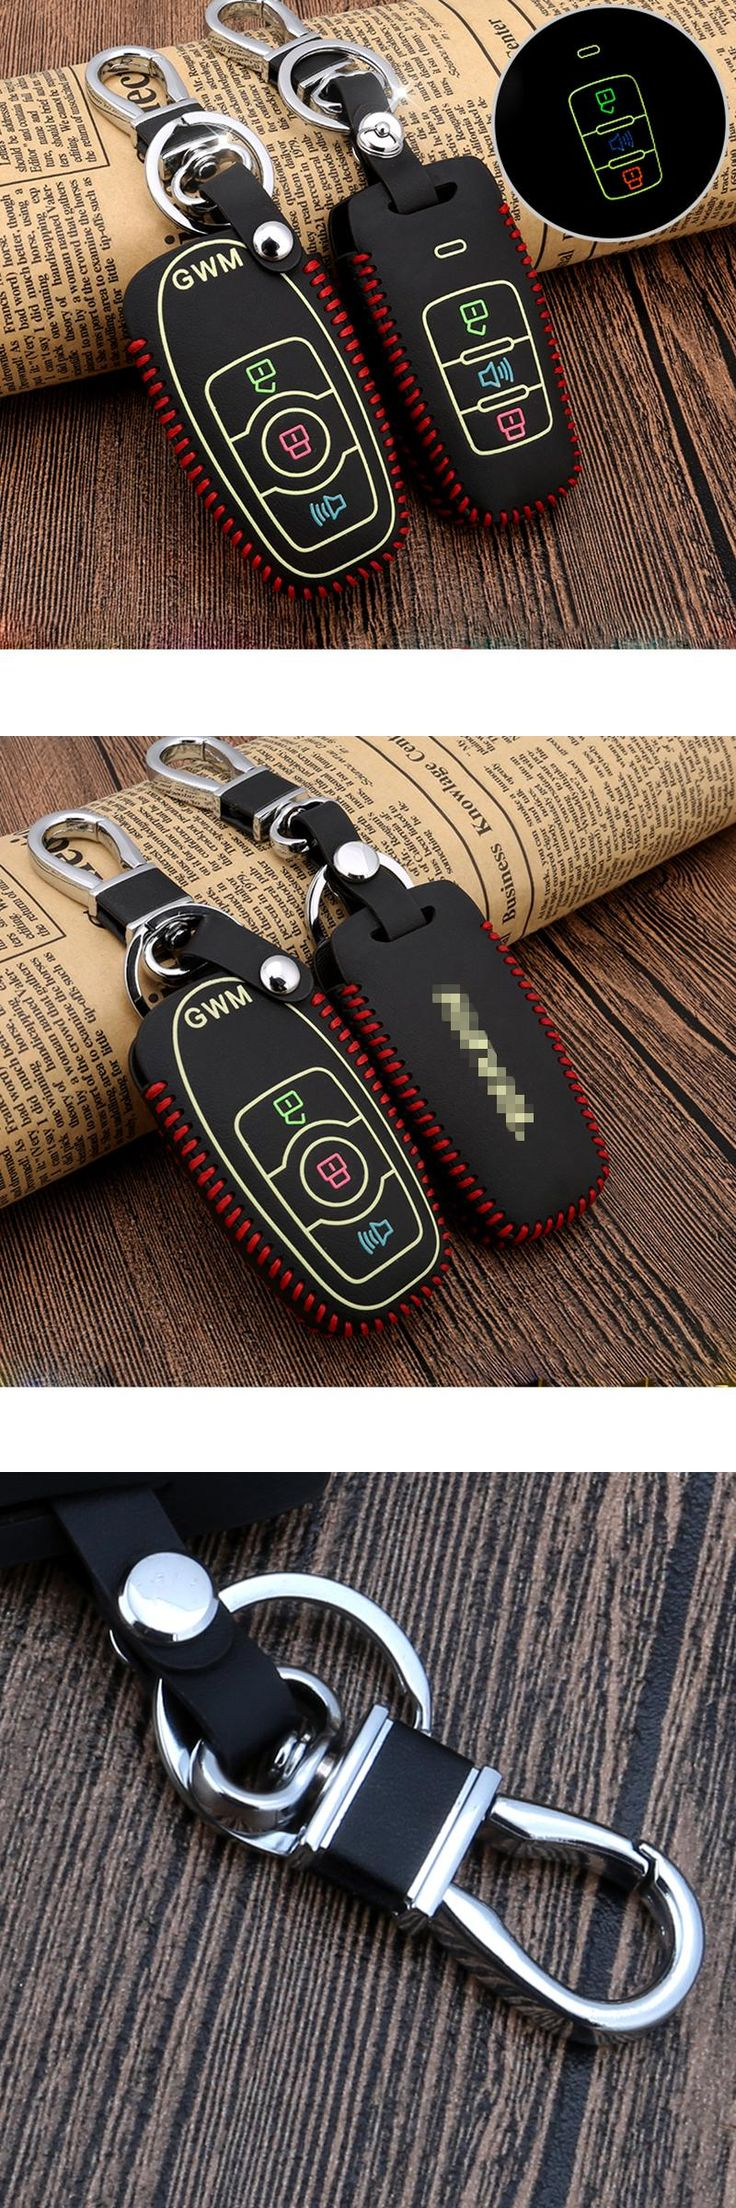 [Visit to Buy] Real Leather Car Key Covers Luminous Key Case Holder Car Accessories for Haval H6 H5 H3 H2 H9 M4 Tabanca Silah Korna Car-styling #Advertisement